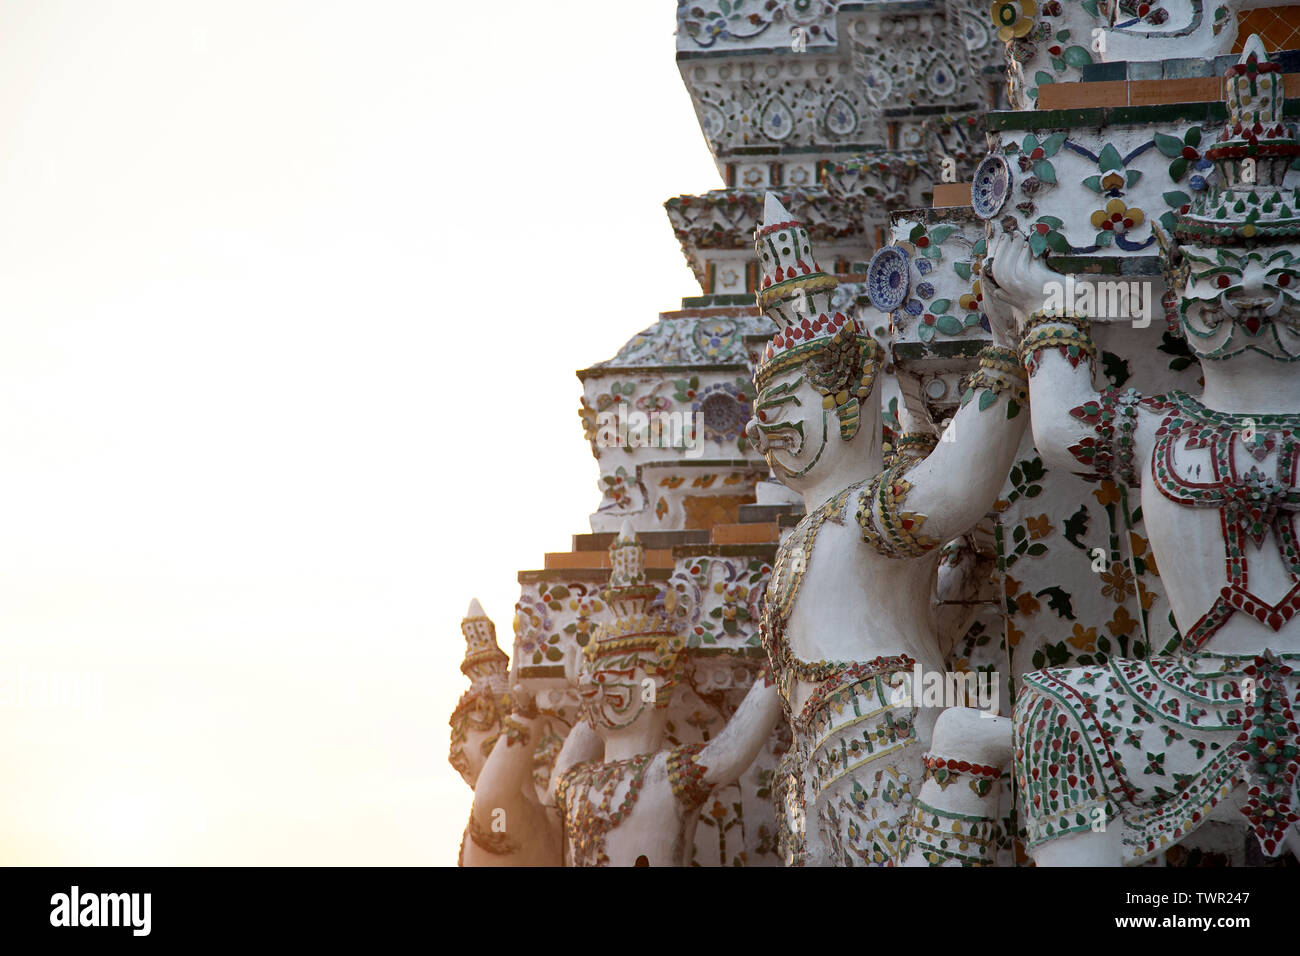 Arun Amarin Stock Photos & Arun Amarin Stock Images - Alamy